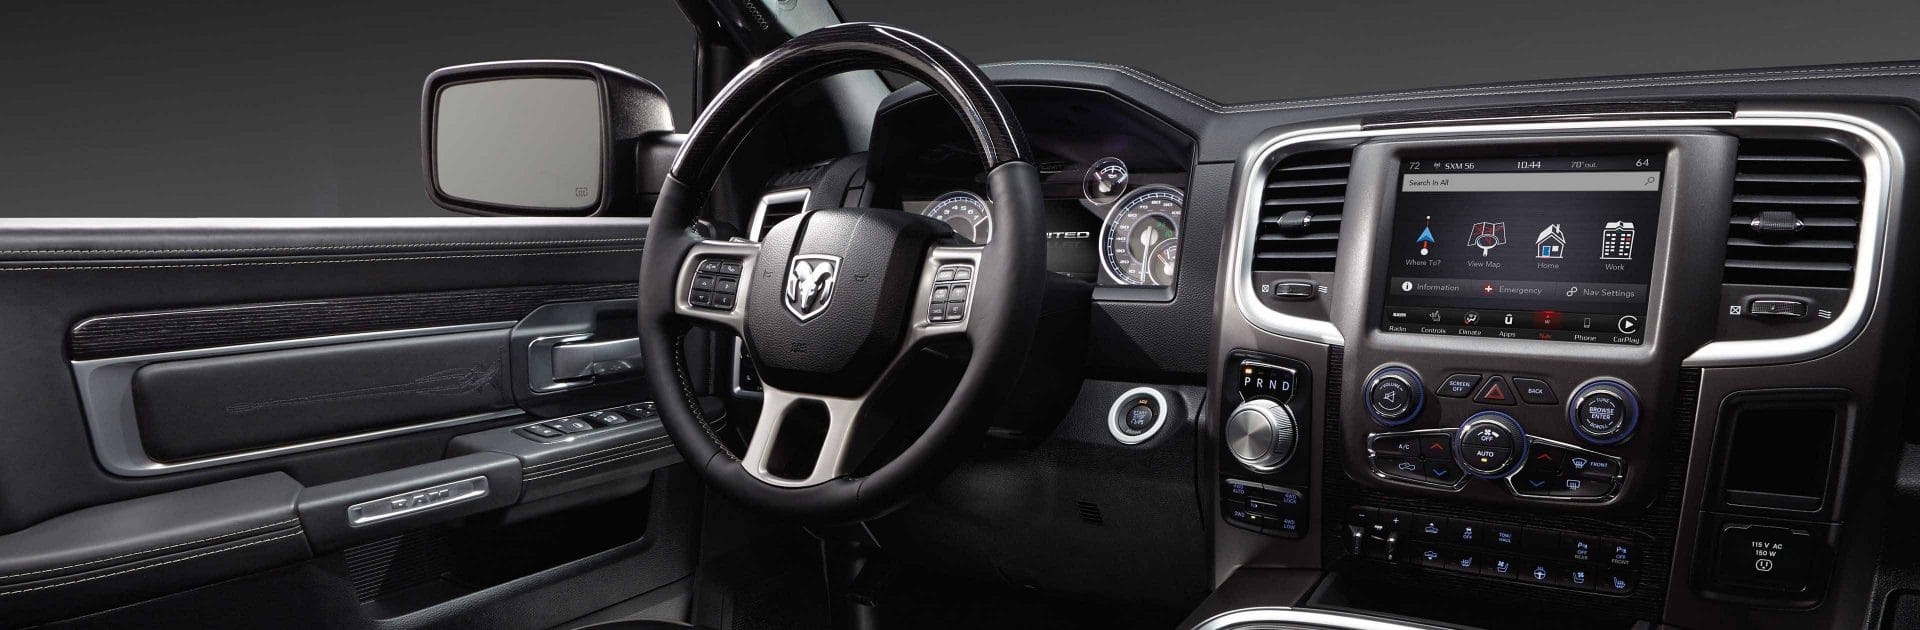 2018 dodge ram 1500 interior best new cars for 2018. Black Bedroom Furniture Sets. Home Design Ideas